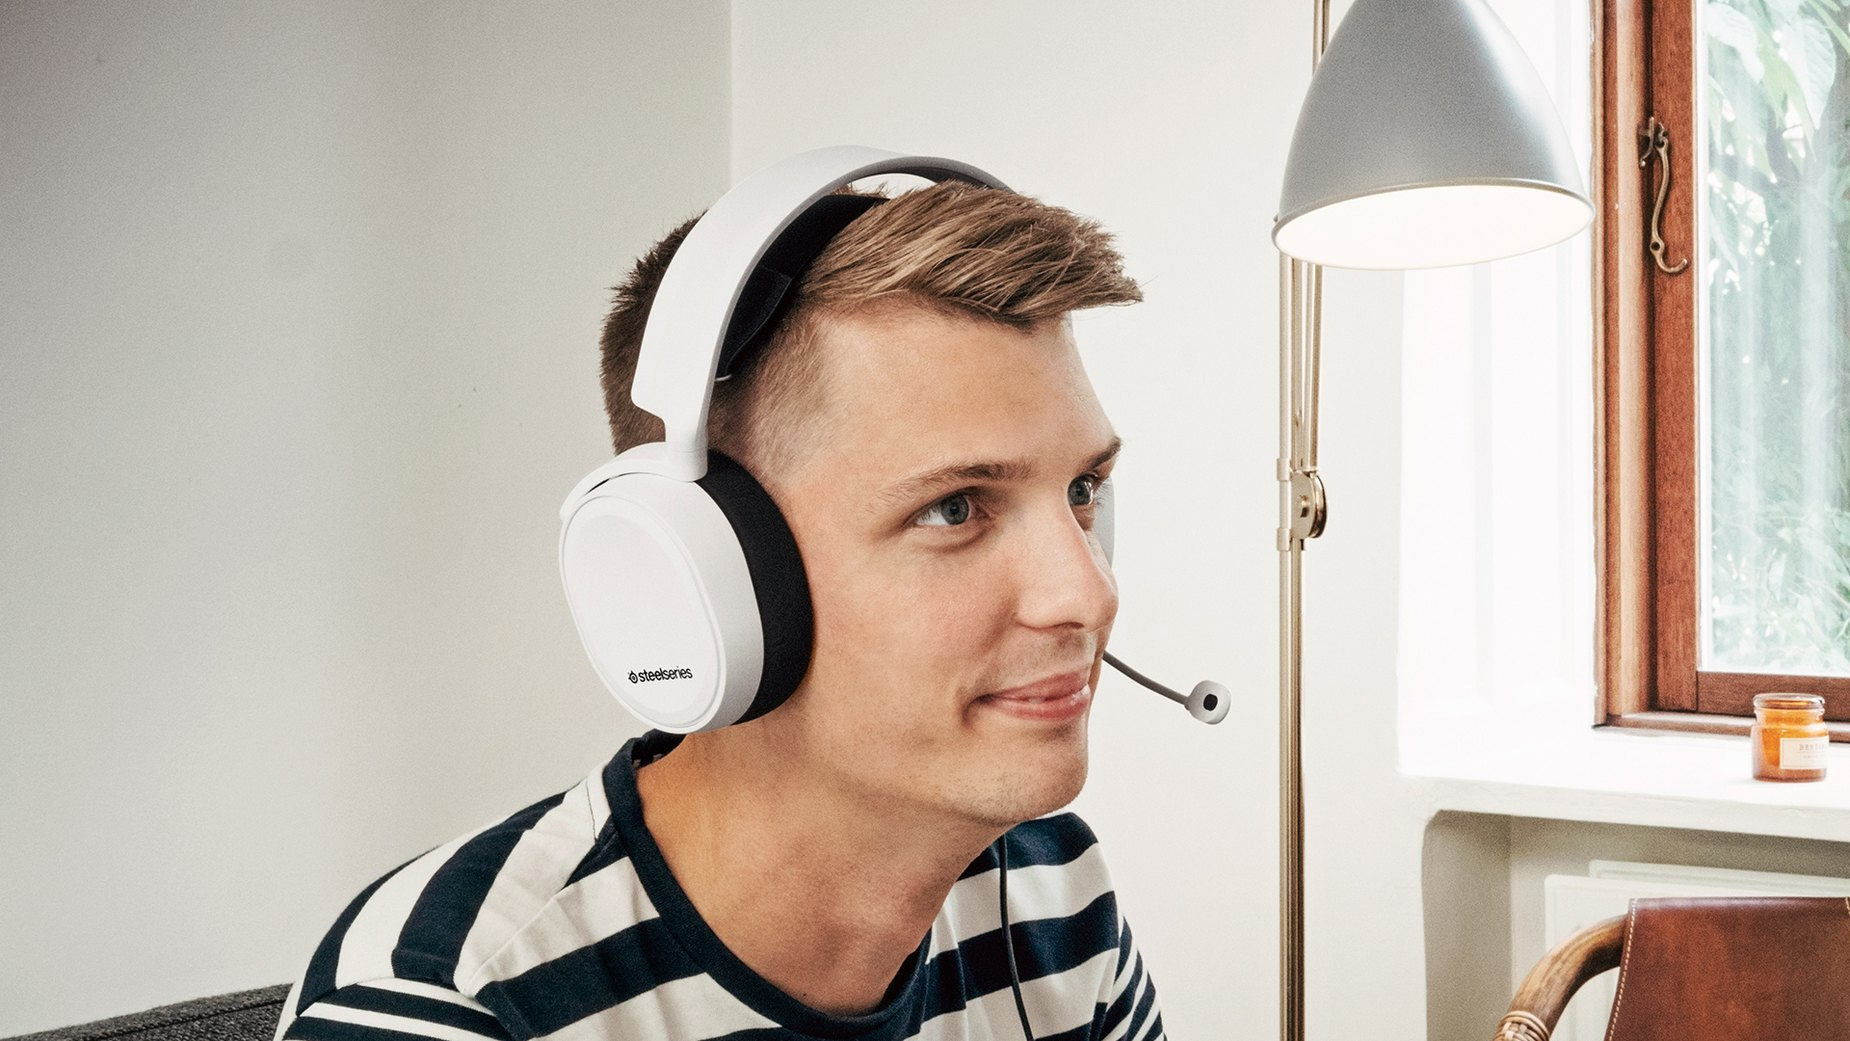 Excited gamer wearing Arctis 3 - White headset